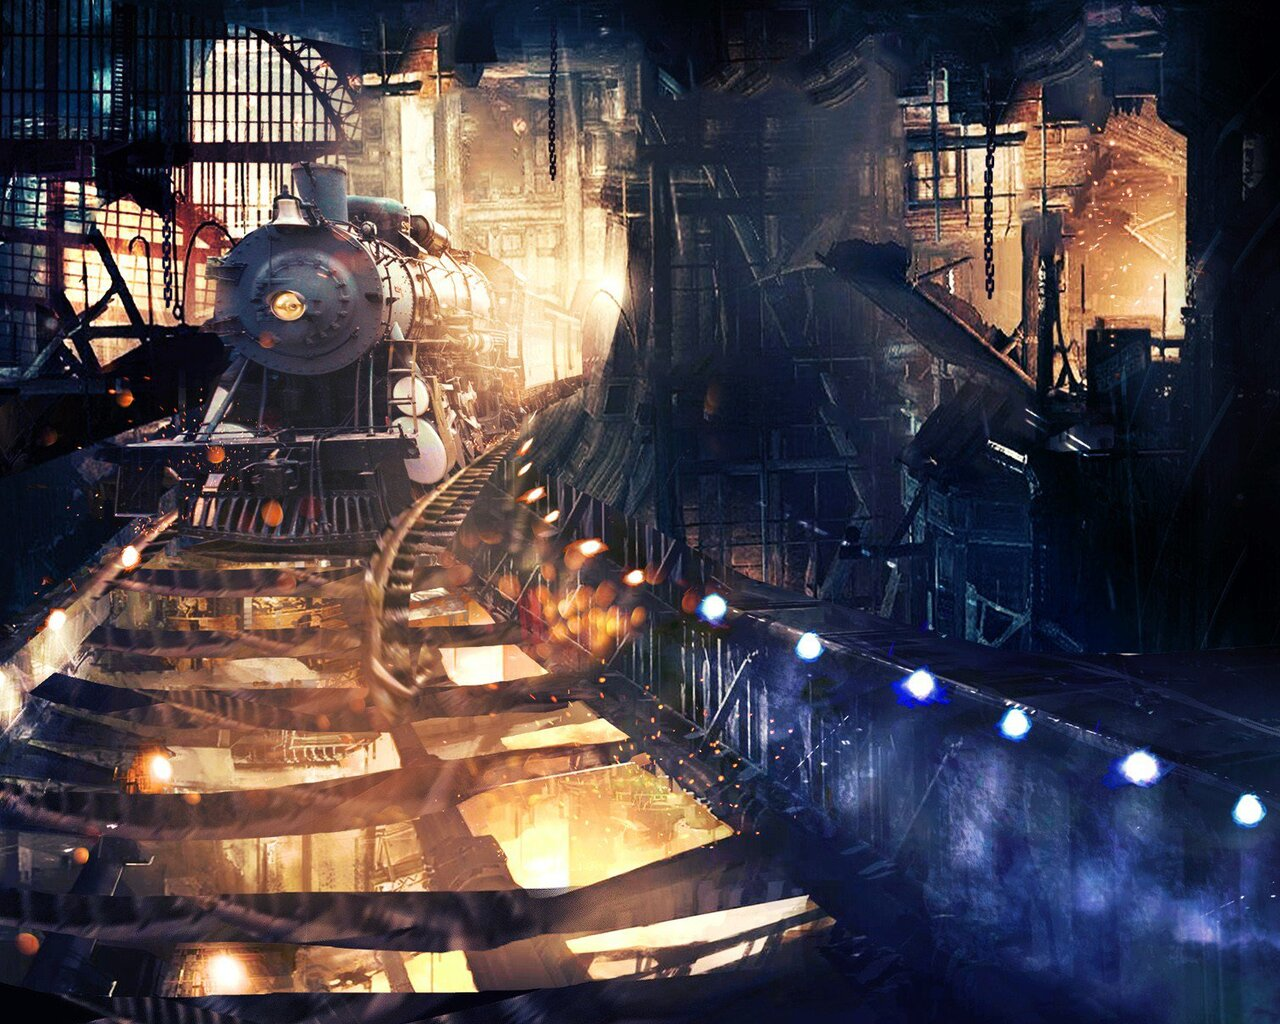 Tunnel train Other Technology Background Wallpapers on Desktop